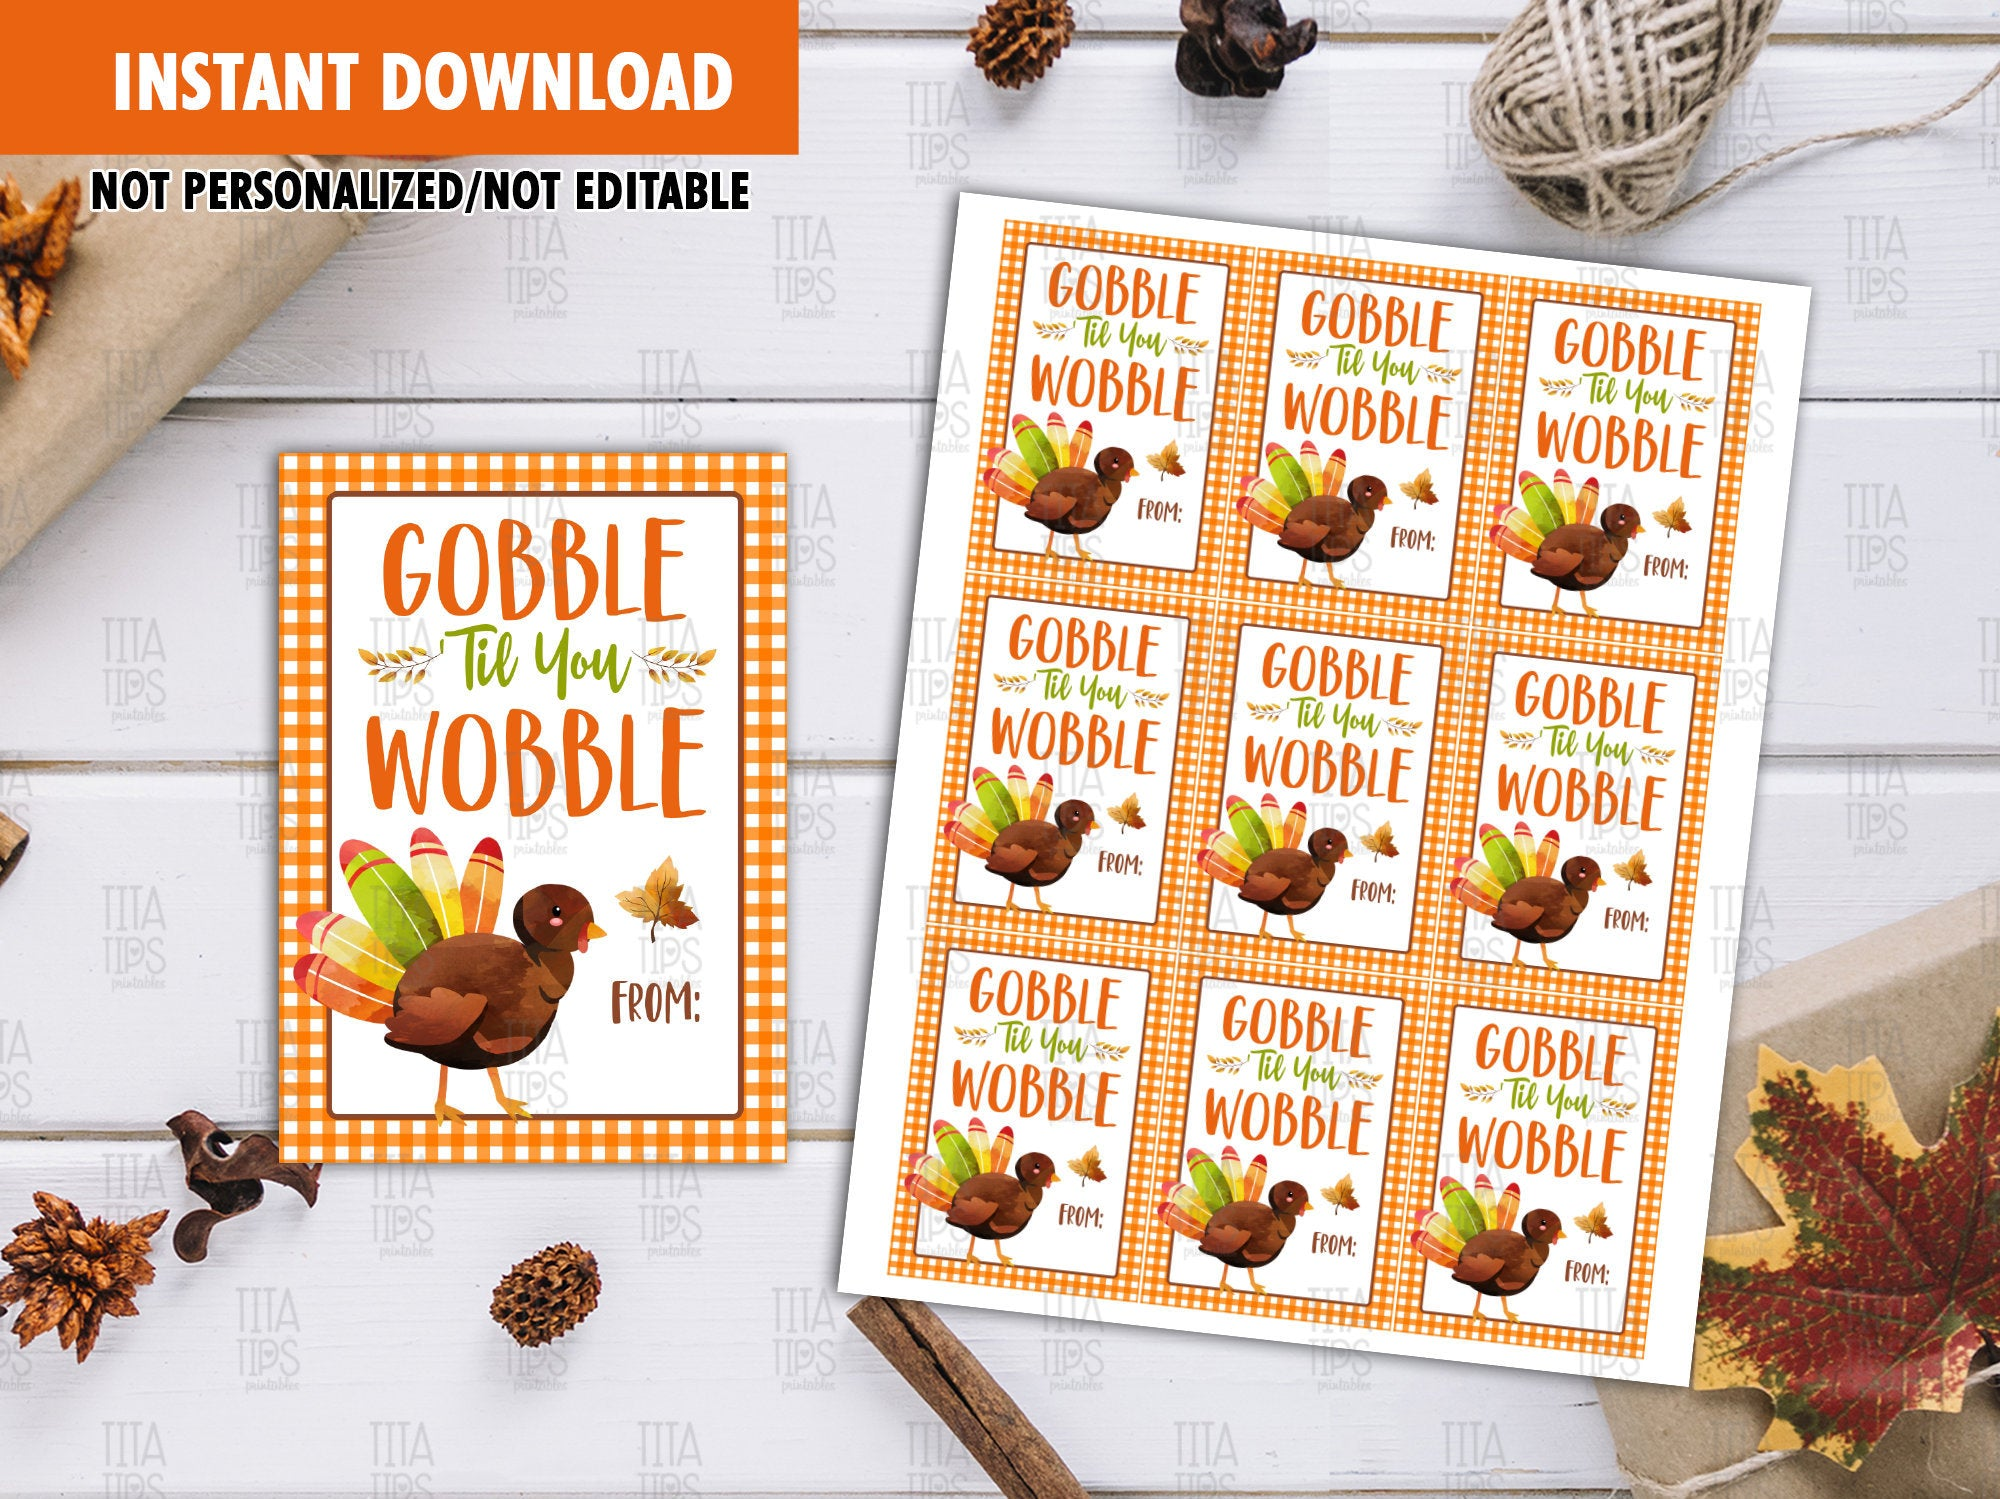 Gobble 'Til You Wobble Favor Tags, Happy Thanksgiving Printable Card, Instant Download - TitaTipsPrintables